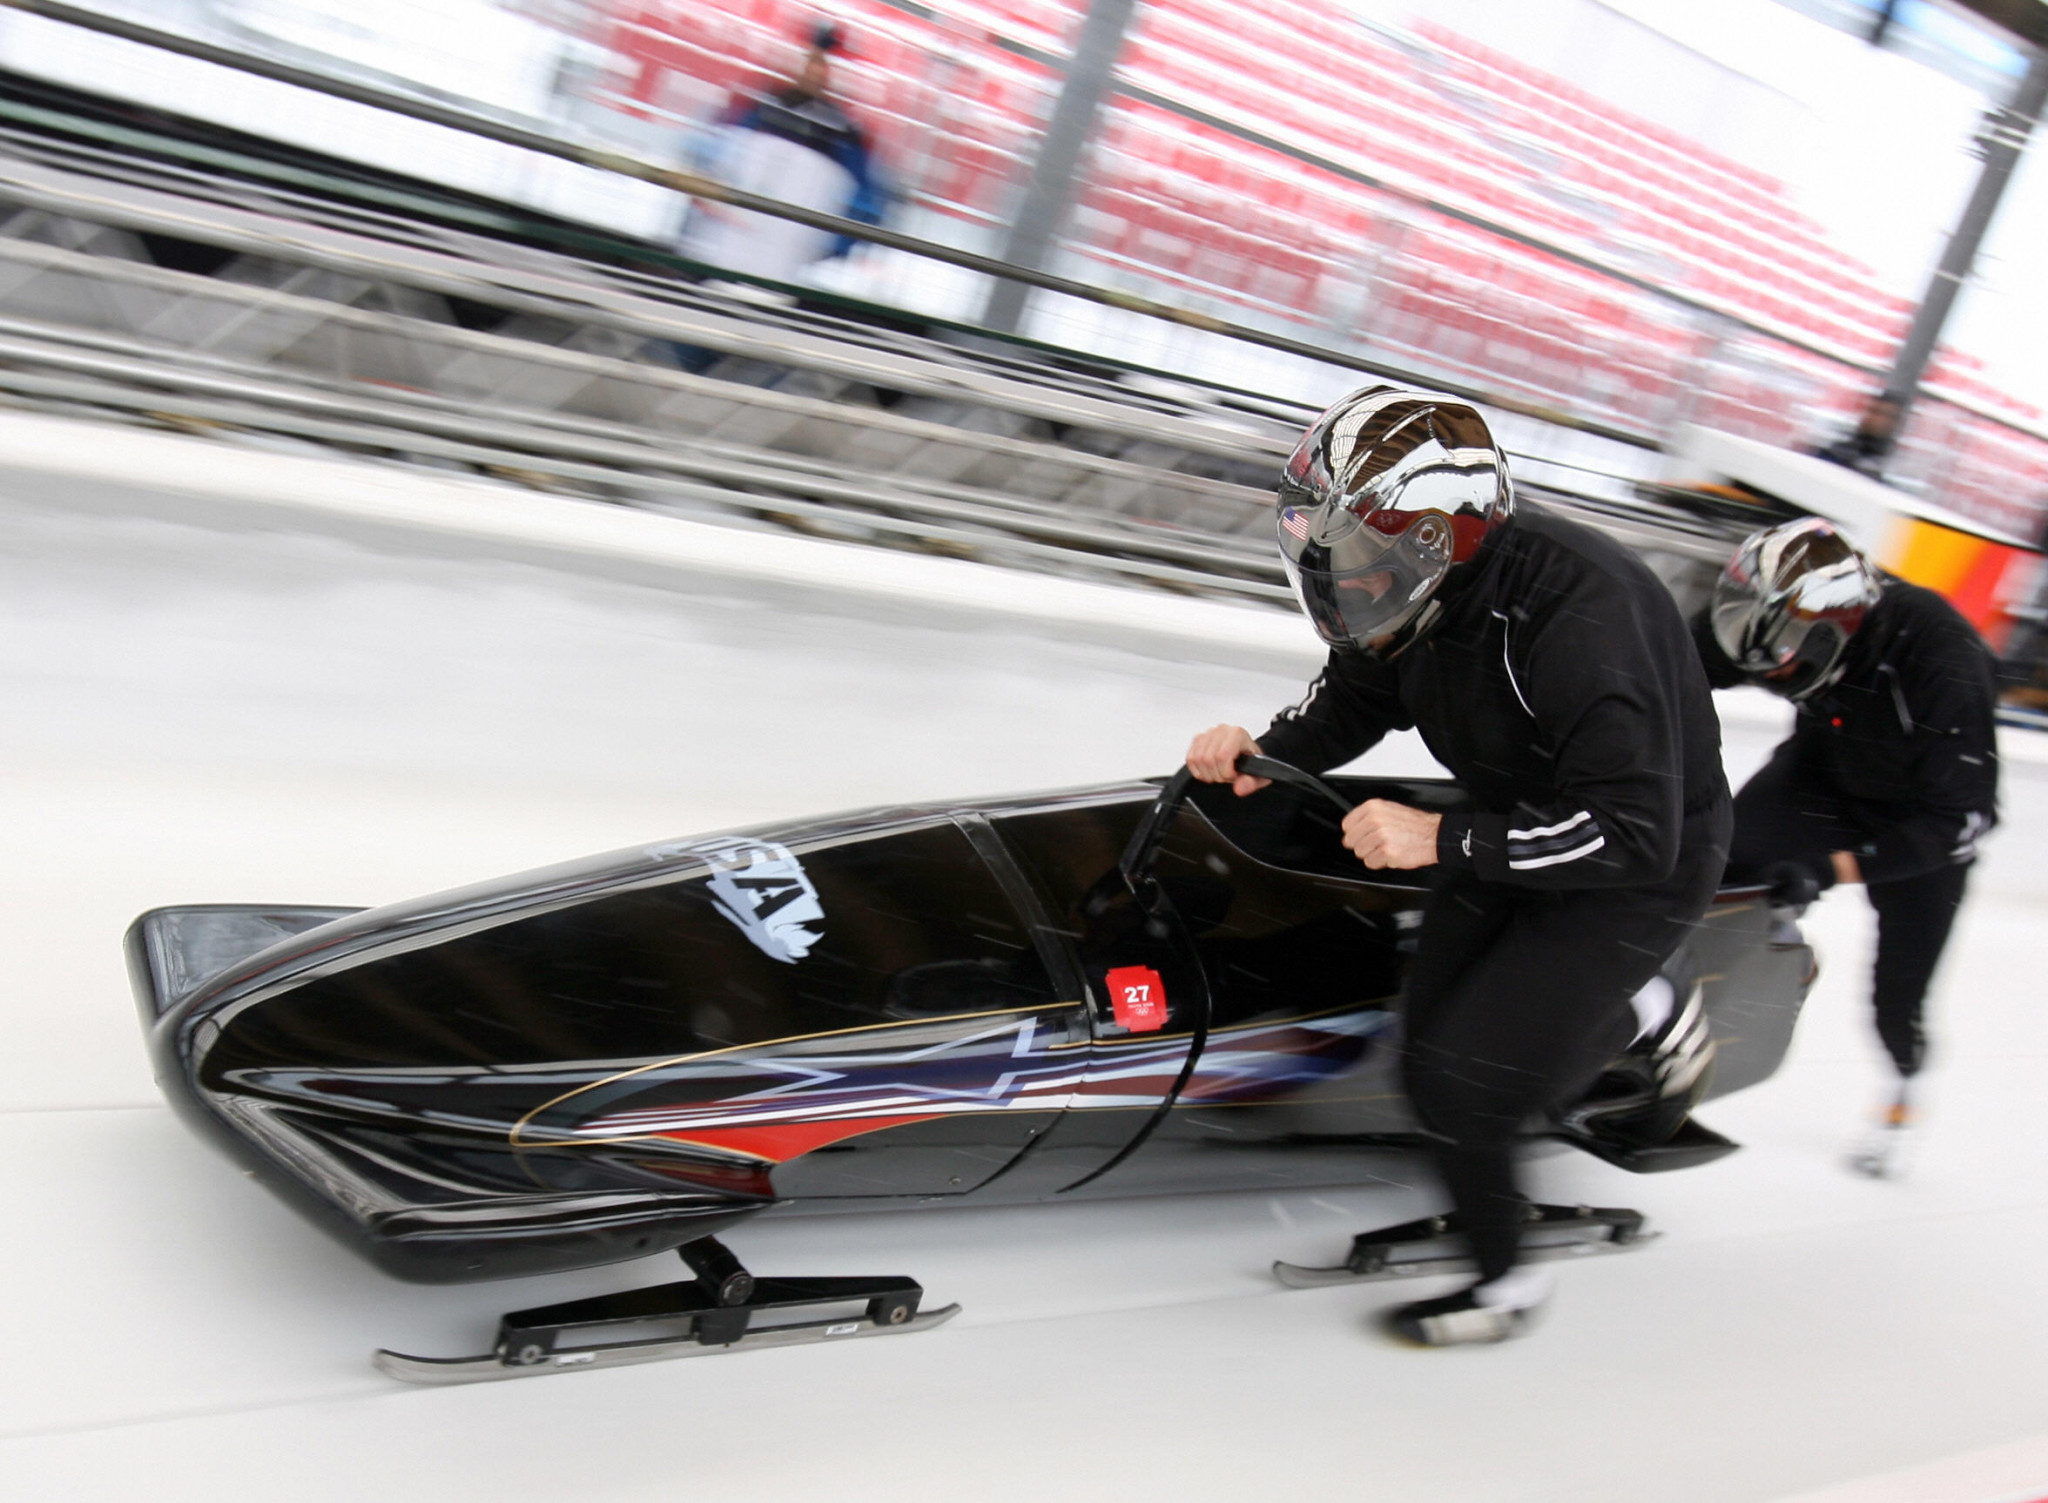 Olympians add to Canada's bobsleigh and skeleton coaching team